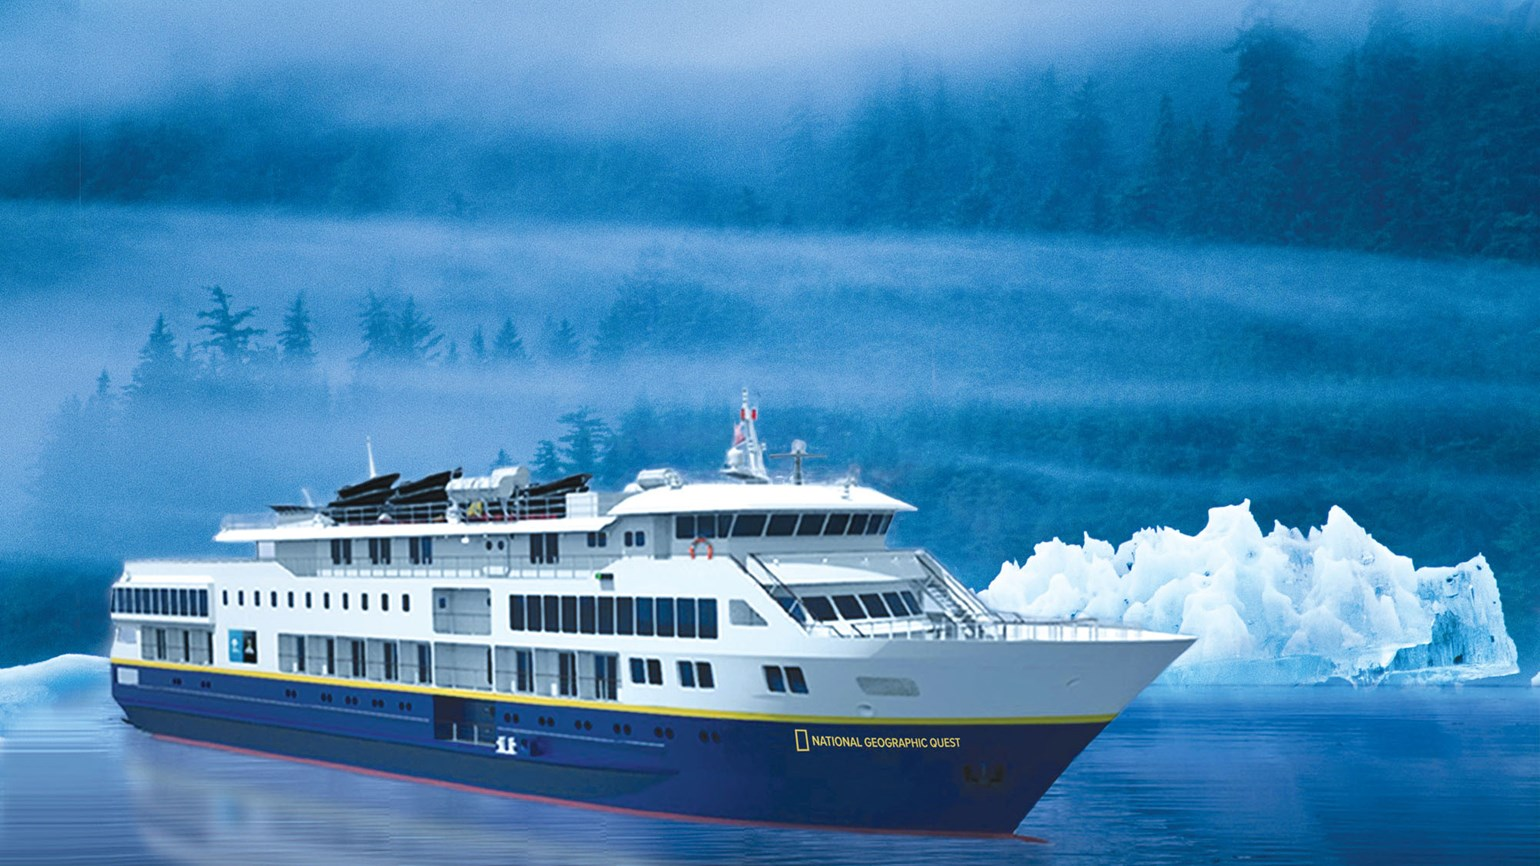 National Geographic Quest , the ship servicing Discovering Treasures of the Inside Passage